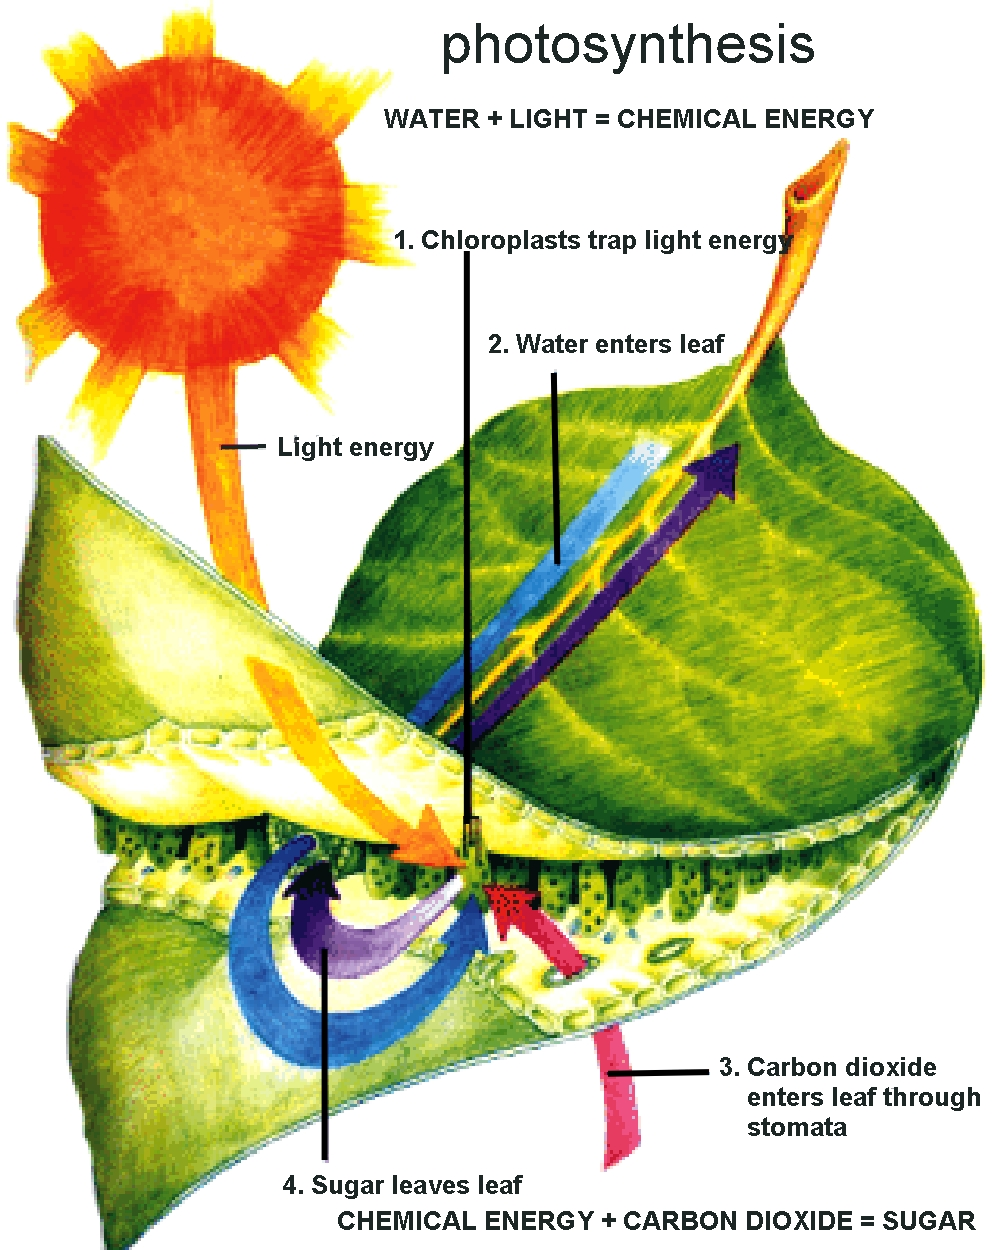 photosynthesis diagram of a plant why it works -- why plants are